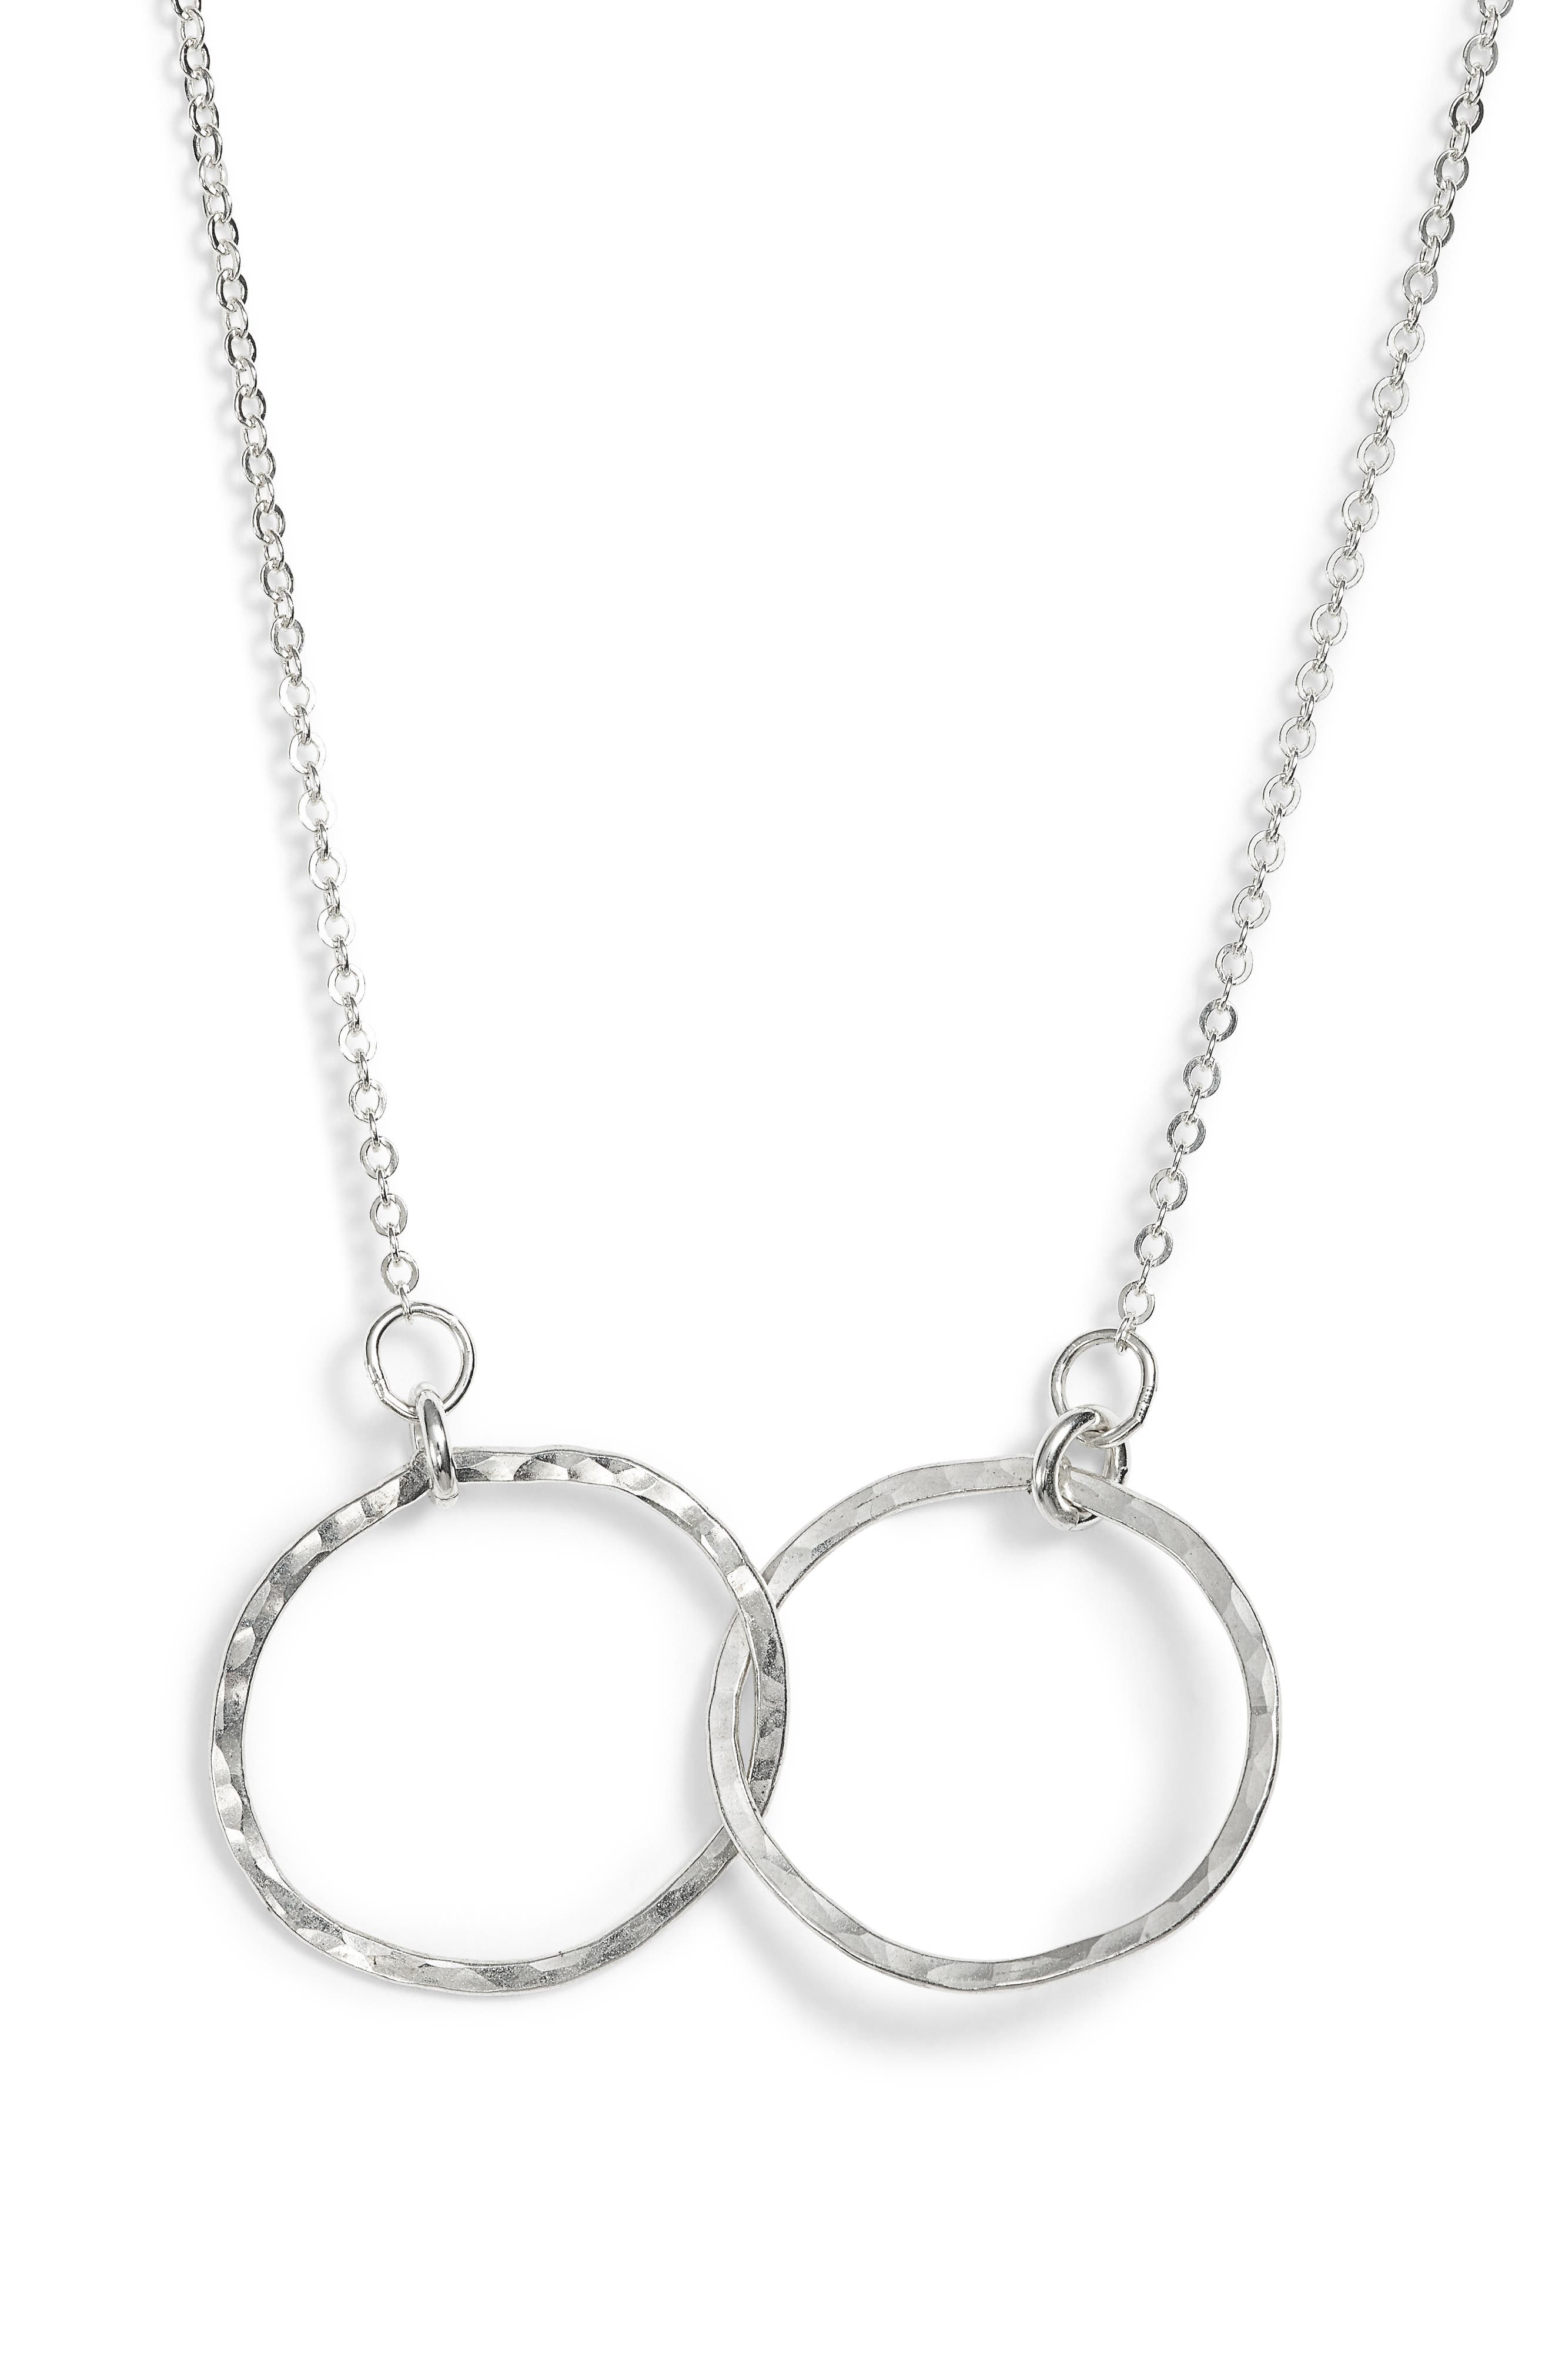 Lucky Eternity Necklace,                             Alternate thumbnail 2, color,                             Silver